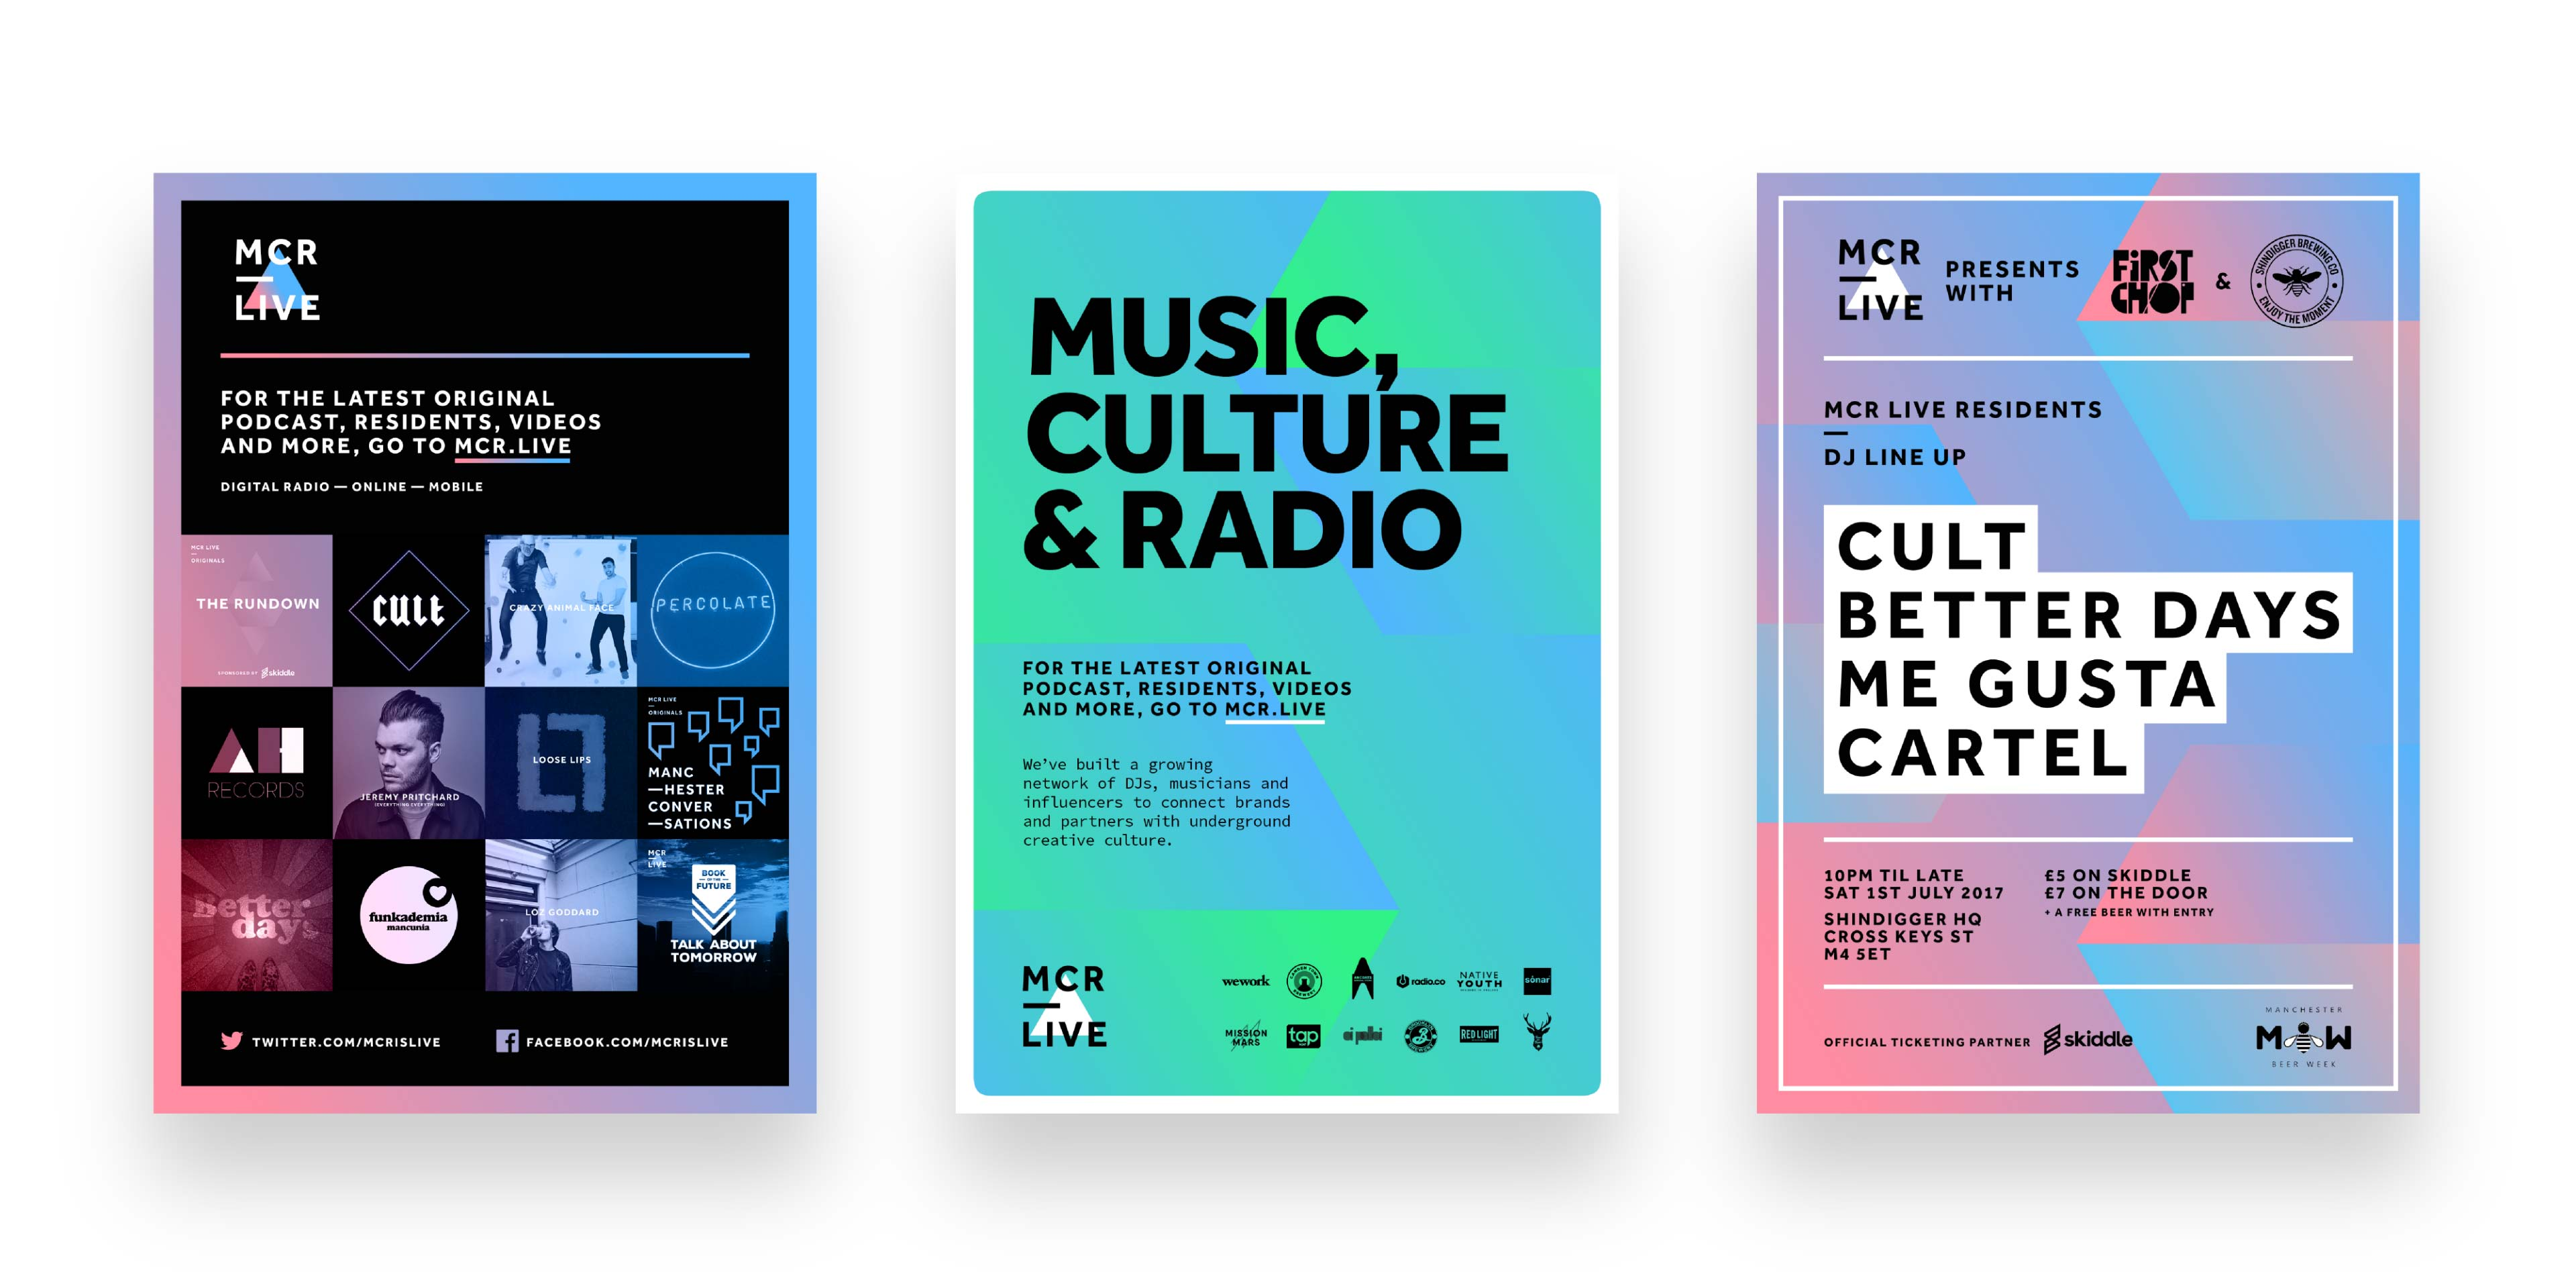 Three poster designs for MCR LIVE from different stages of its existence, all vibrant and different but energetic and playful, with brash colours and strong type.